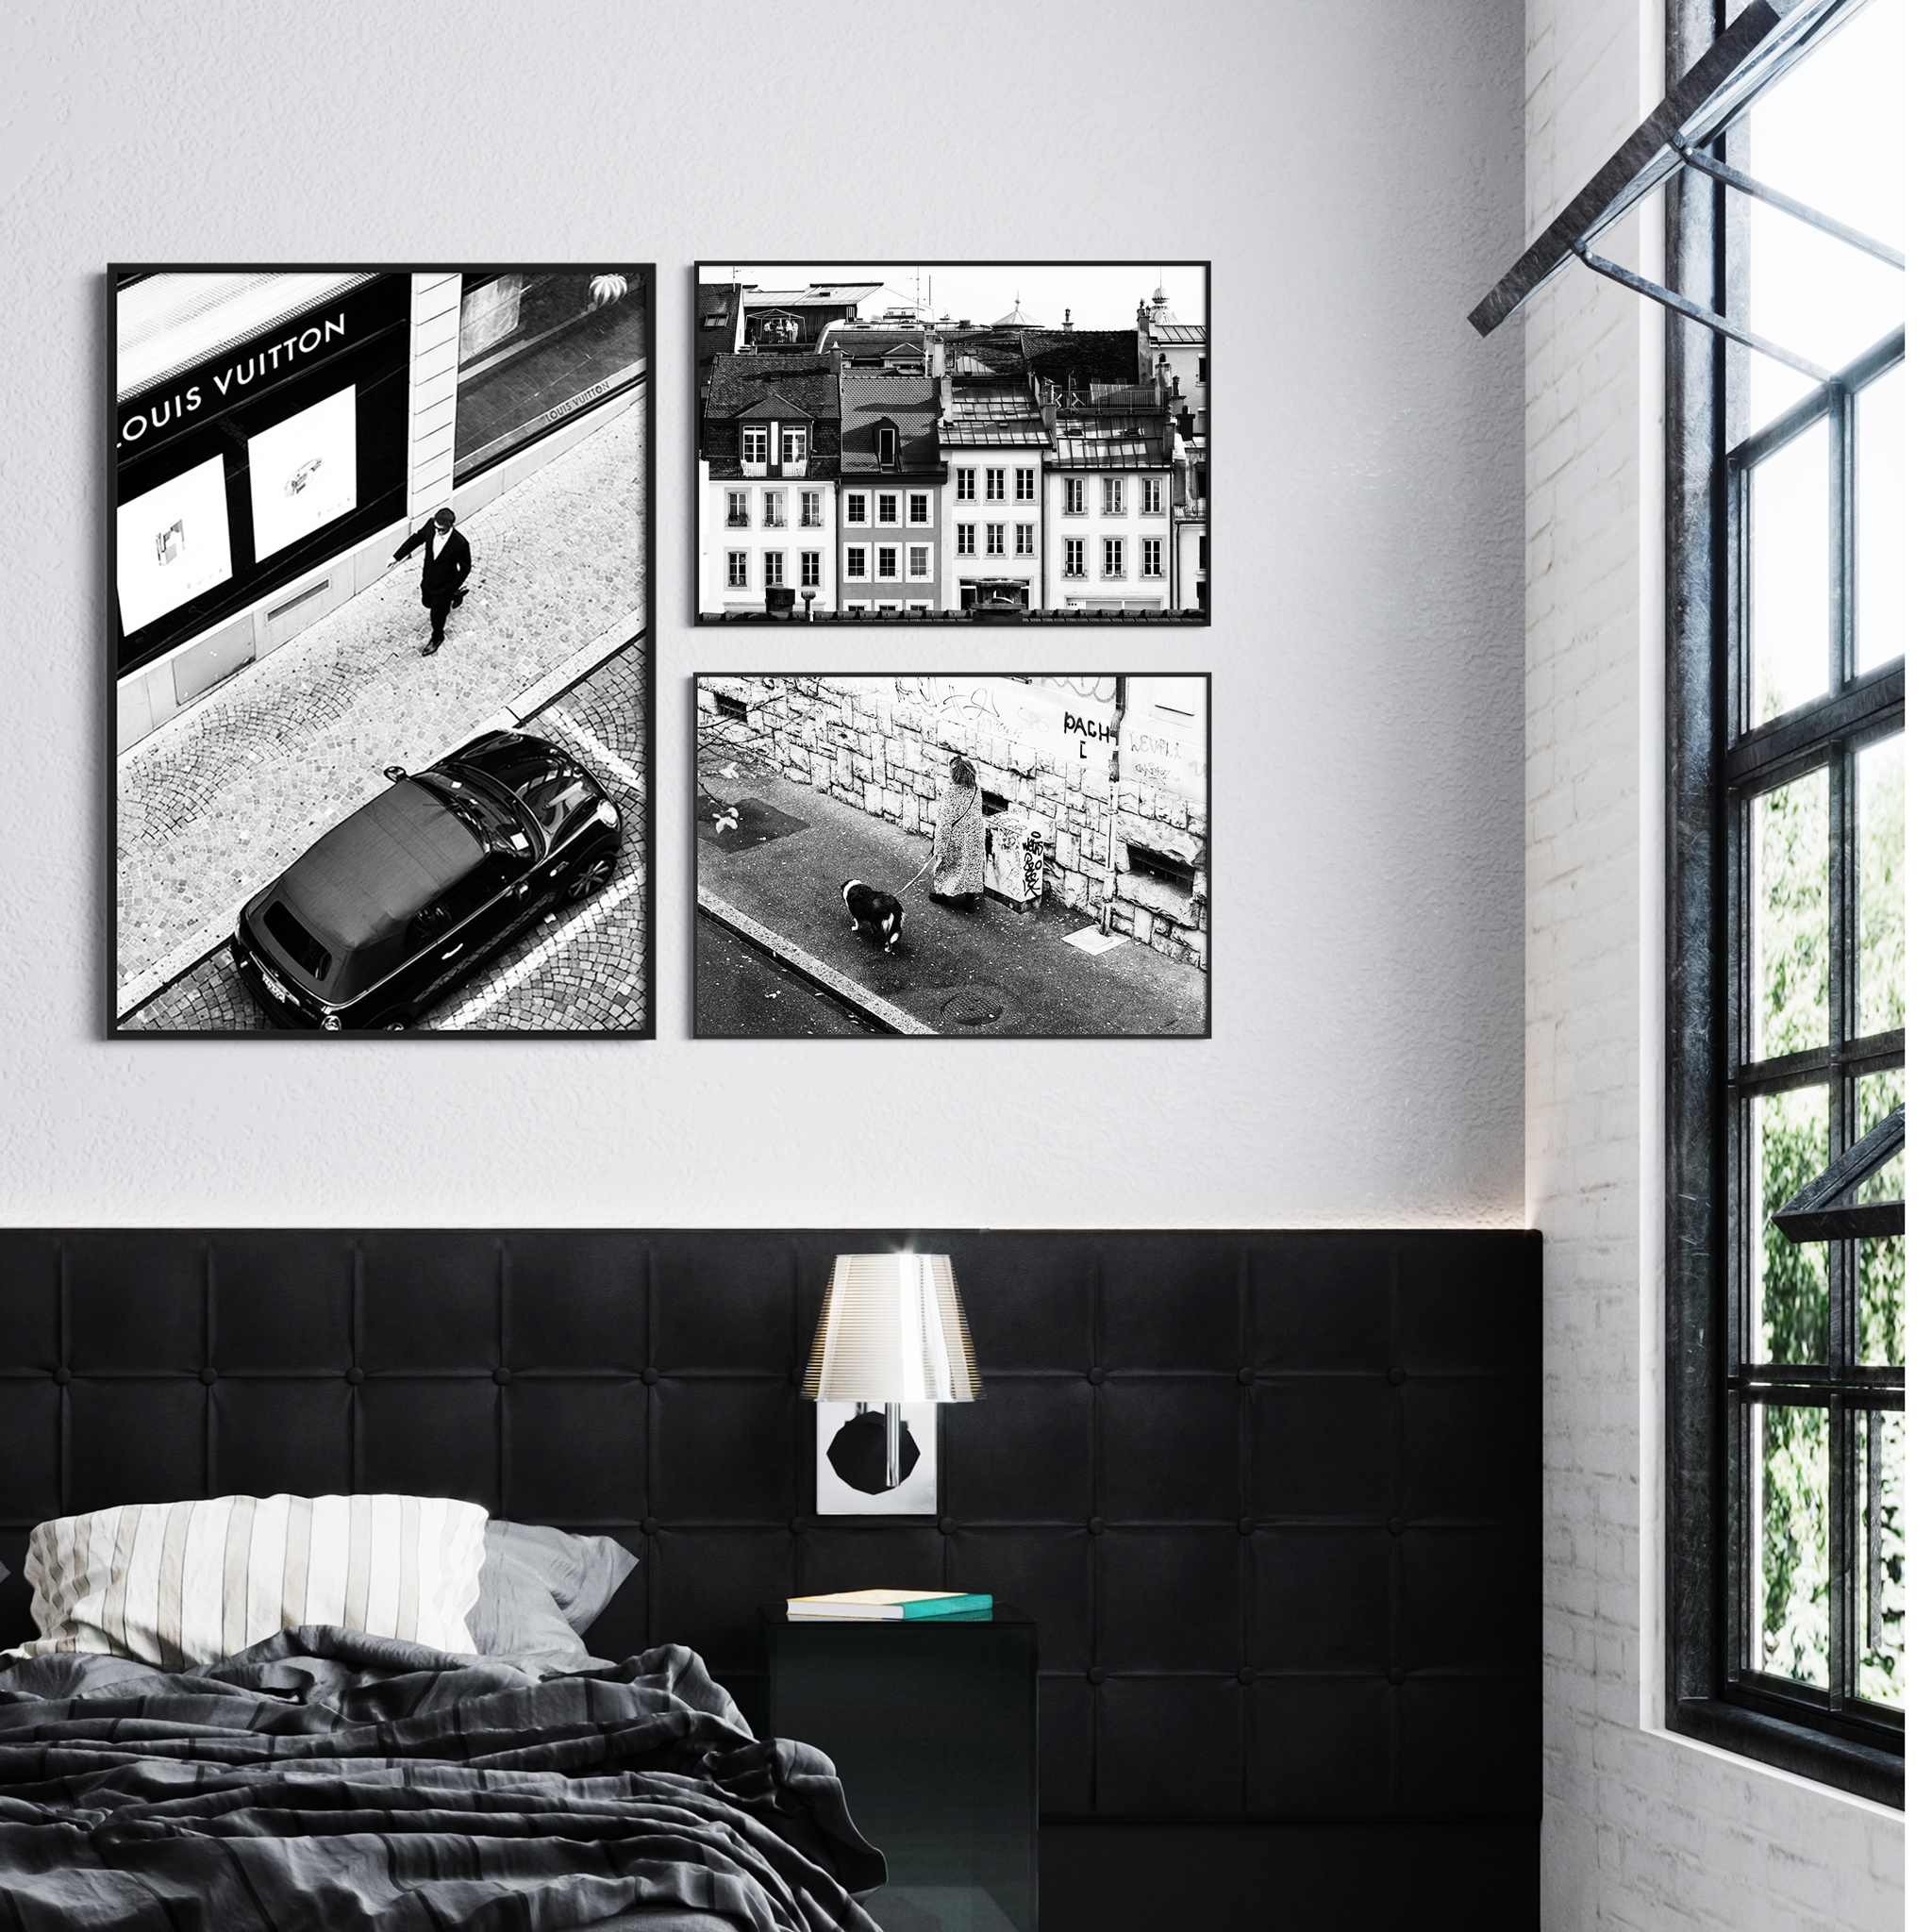 Lausanne gallery wall - a collection of black and white photographic prints from Lausanne, Switzerland on the wall in the bedroom interior